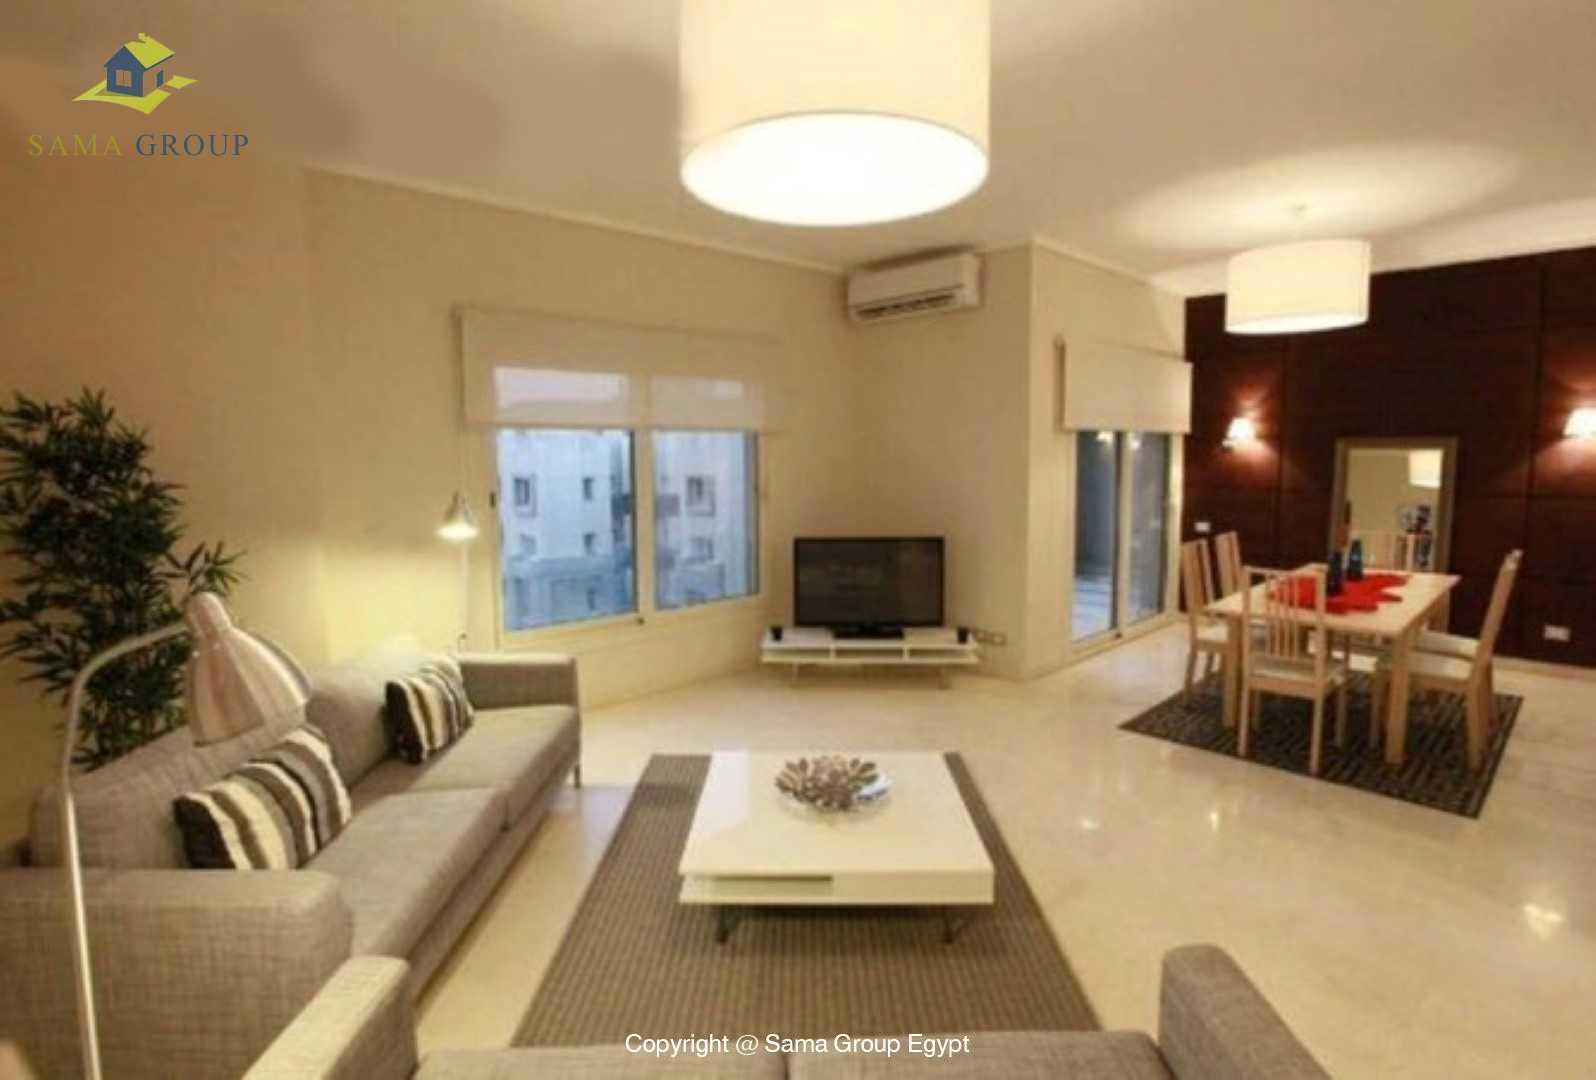 Apartment For Rent In New Cairo Compounds Village Gate,Modern Furnished,Apartment NO #1